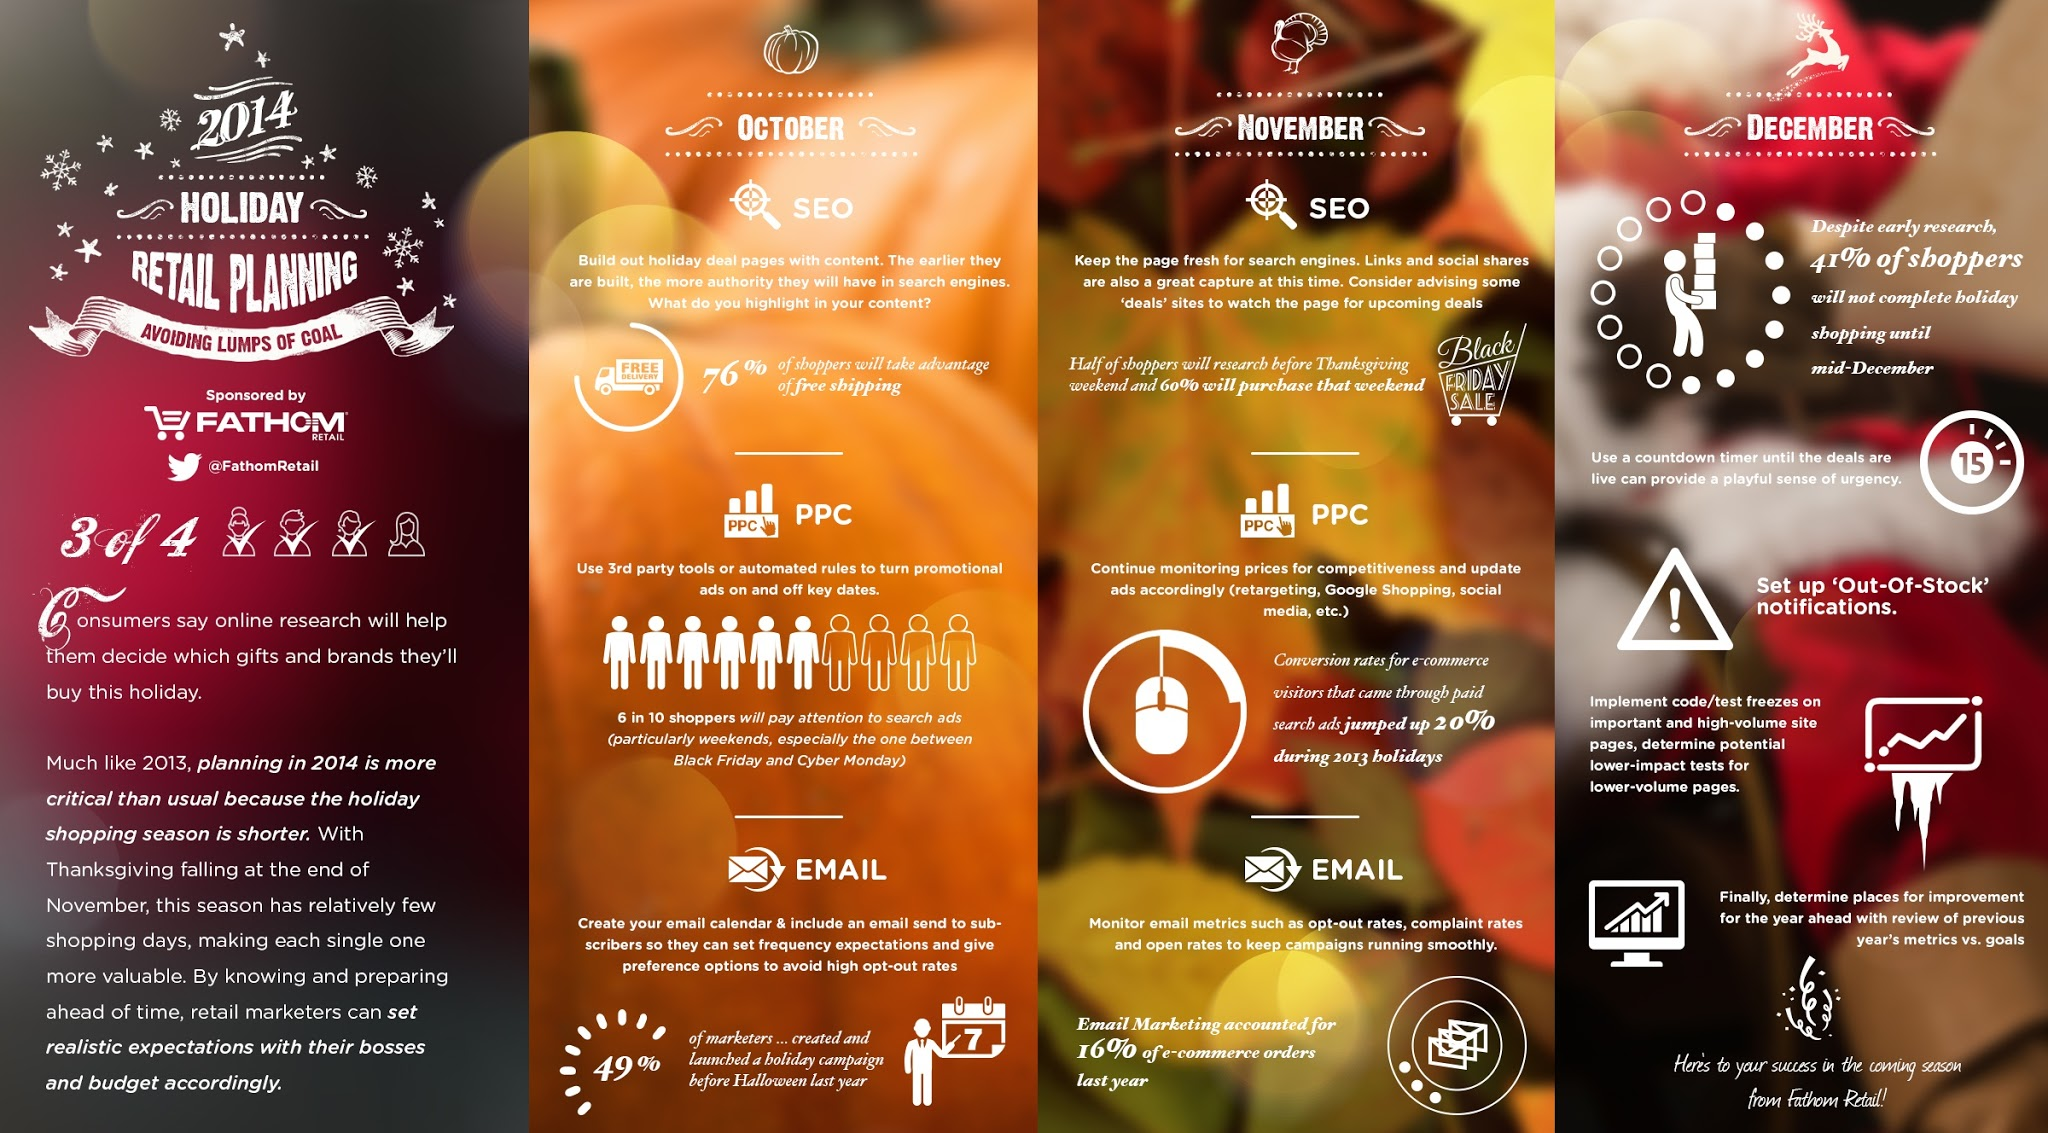 Holiday Marketing Trends - Infographic #SEO #PPC #Email